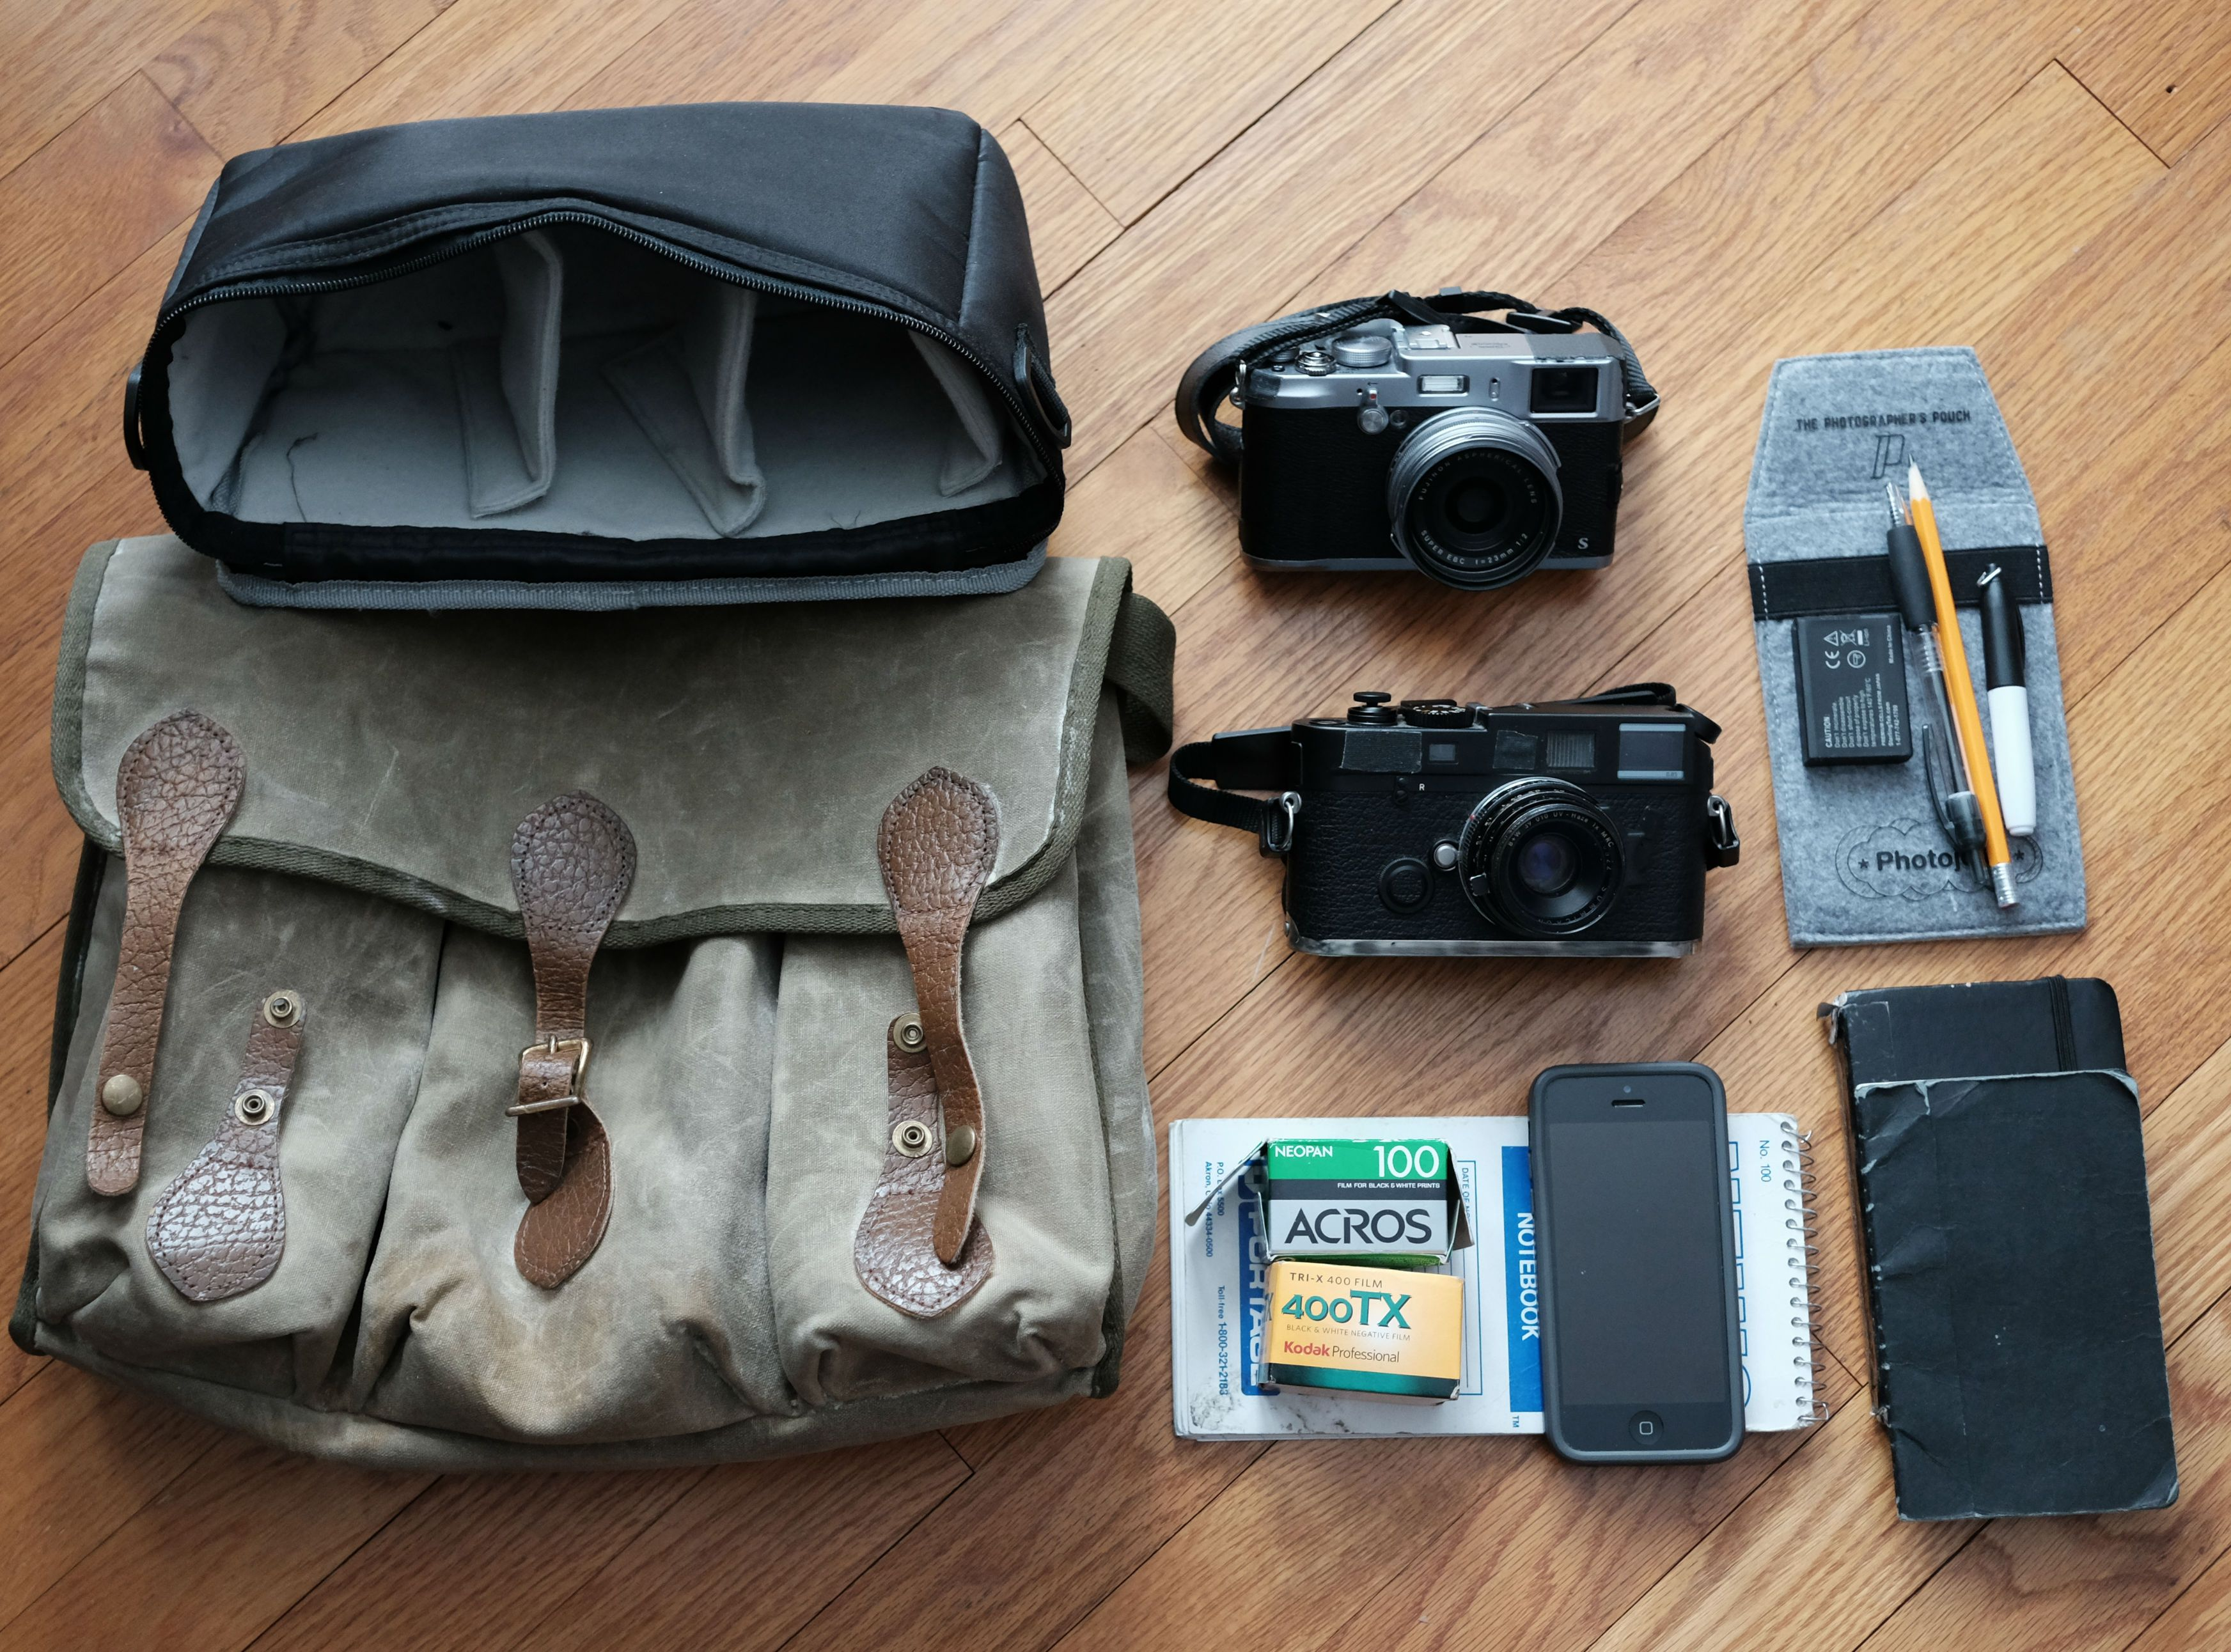 In My Bag  Leica M6 TTL with Summicron 35mm  Fujifilm X100S. The bag is an  old canvas Leitz camera bag that I hand-waxed to give the contents a  measure of ... ffe129445af64